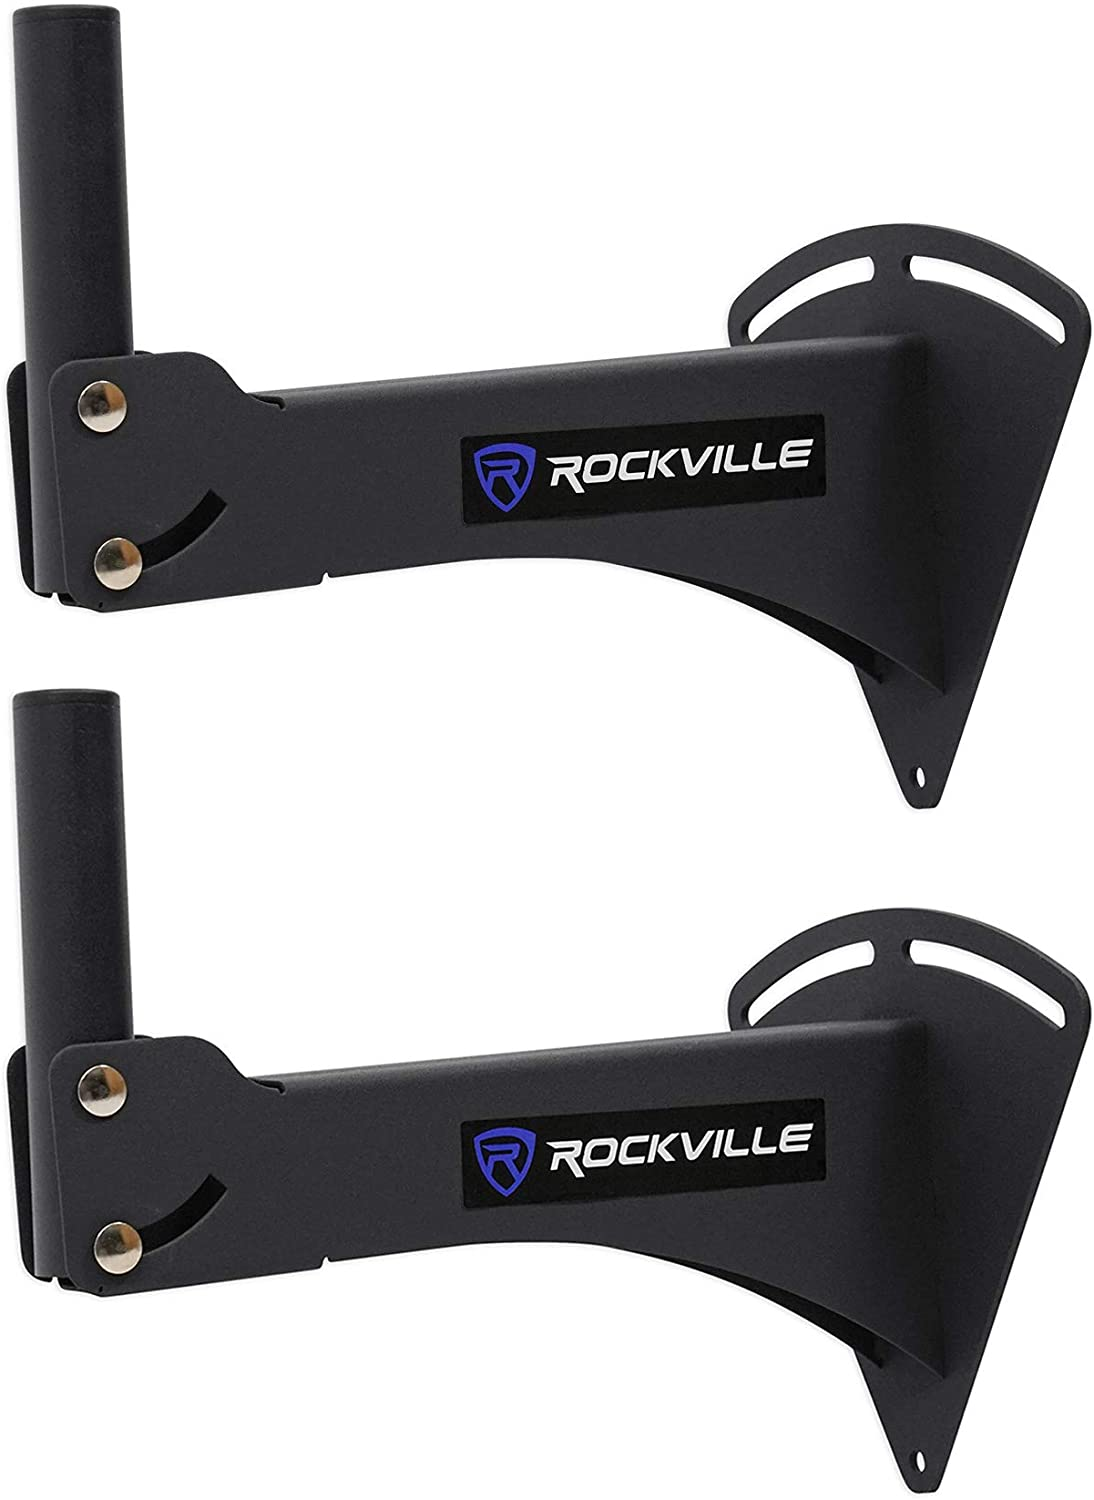 Pair Rockville Adjustable PA Wall Mount Brackets for QSC CP8 Speakers